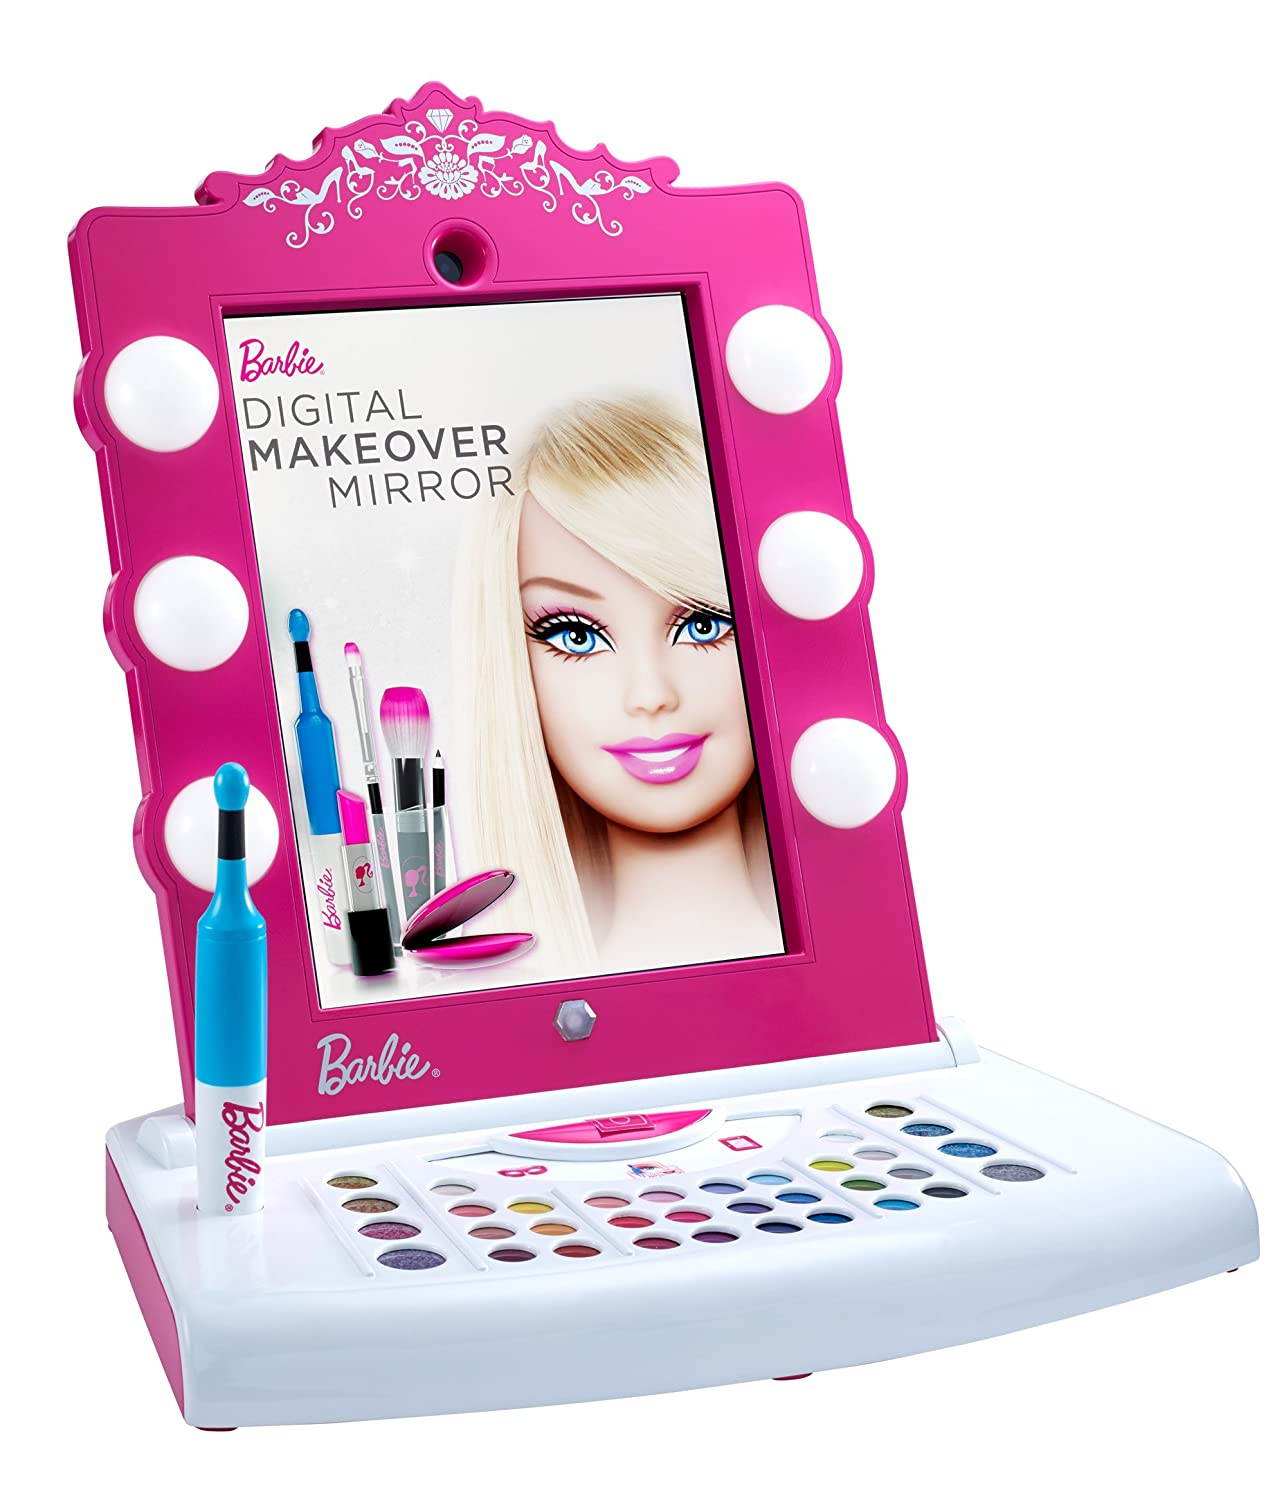 Amazon Barbie Digital Makeover Mirror Toys & Games